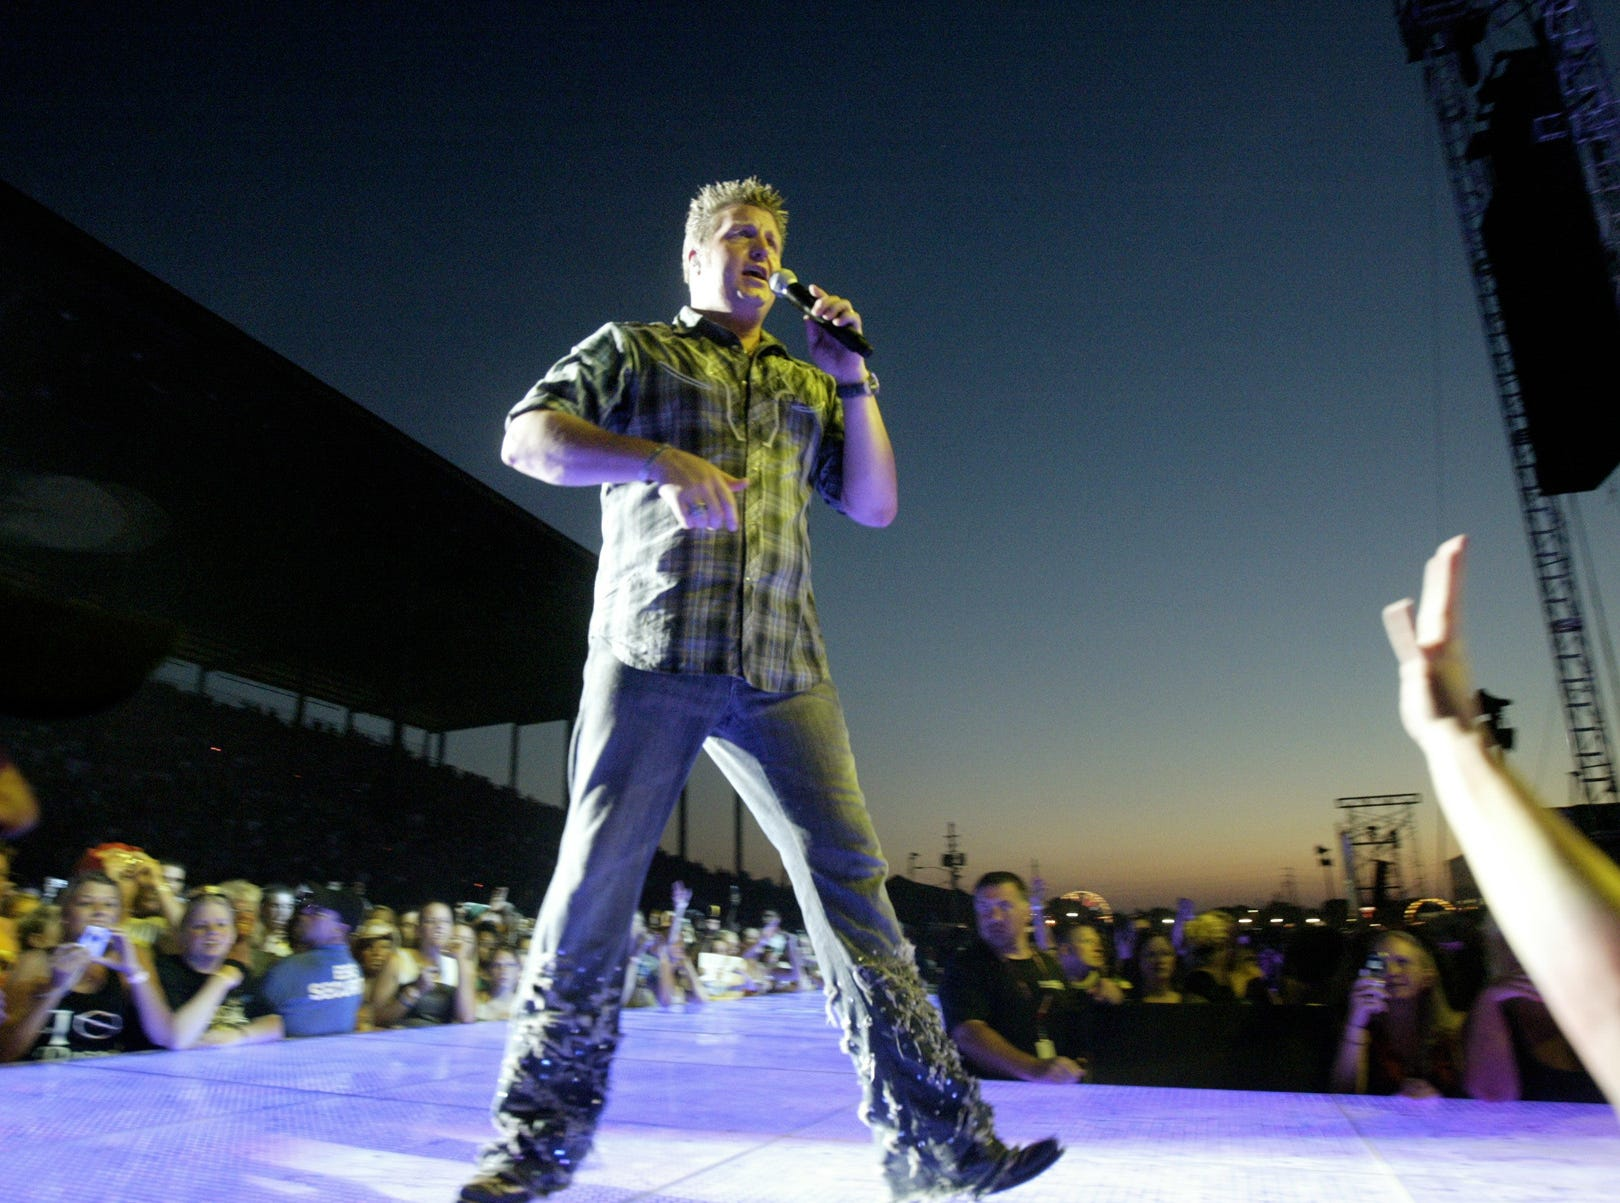 Rascal Flatts vocalist Gary LeVox walks on the catwalk into the crowd at the Rascal Flatts concert at the Grandstand at the 2007 Indiana State Fair Friday August 10.